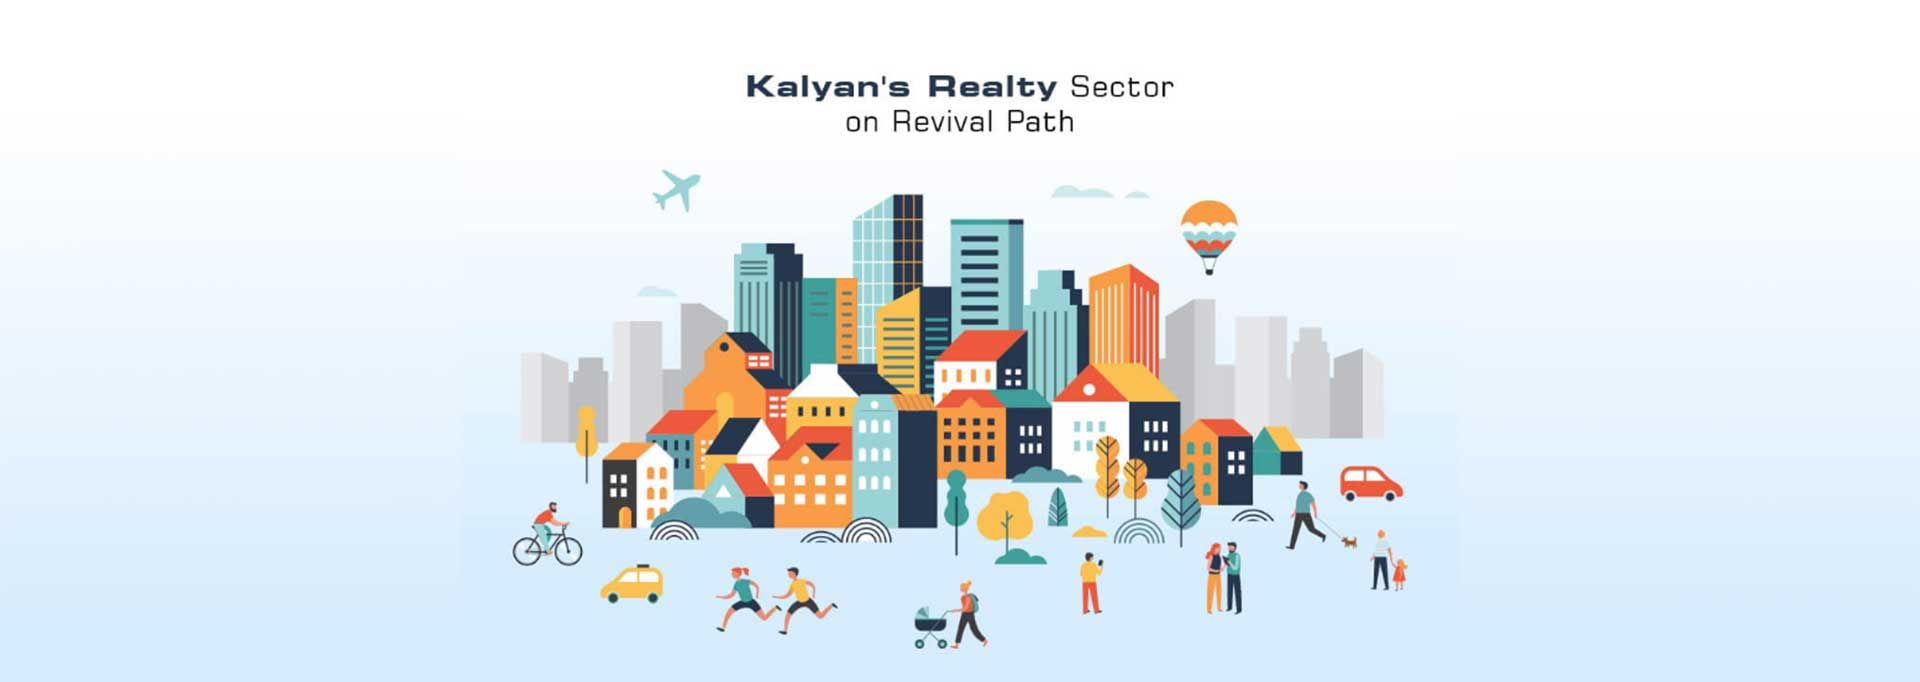 Kalyan's Realty Sector on Revival Path